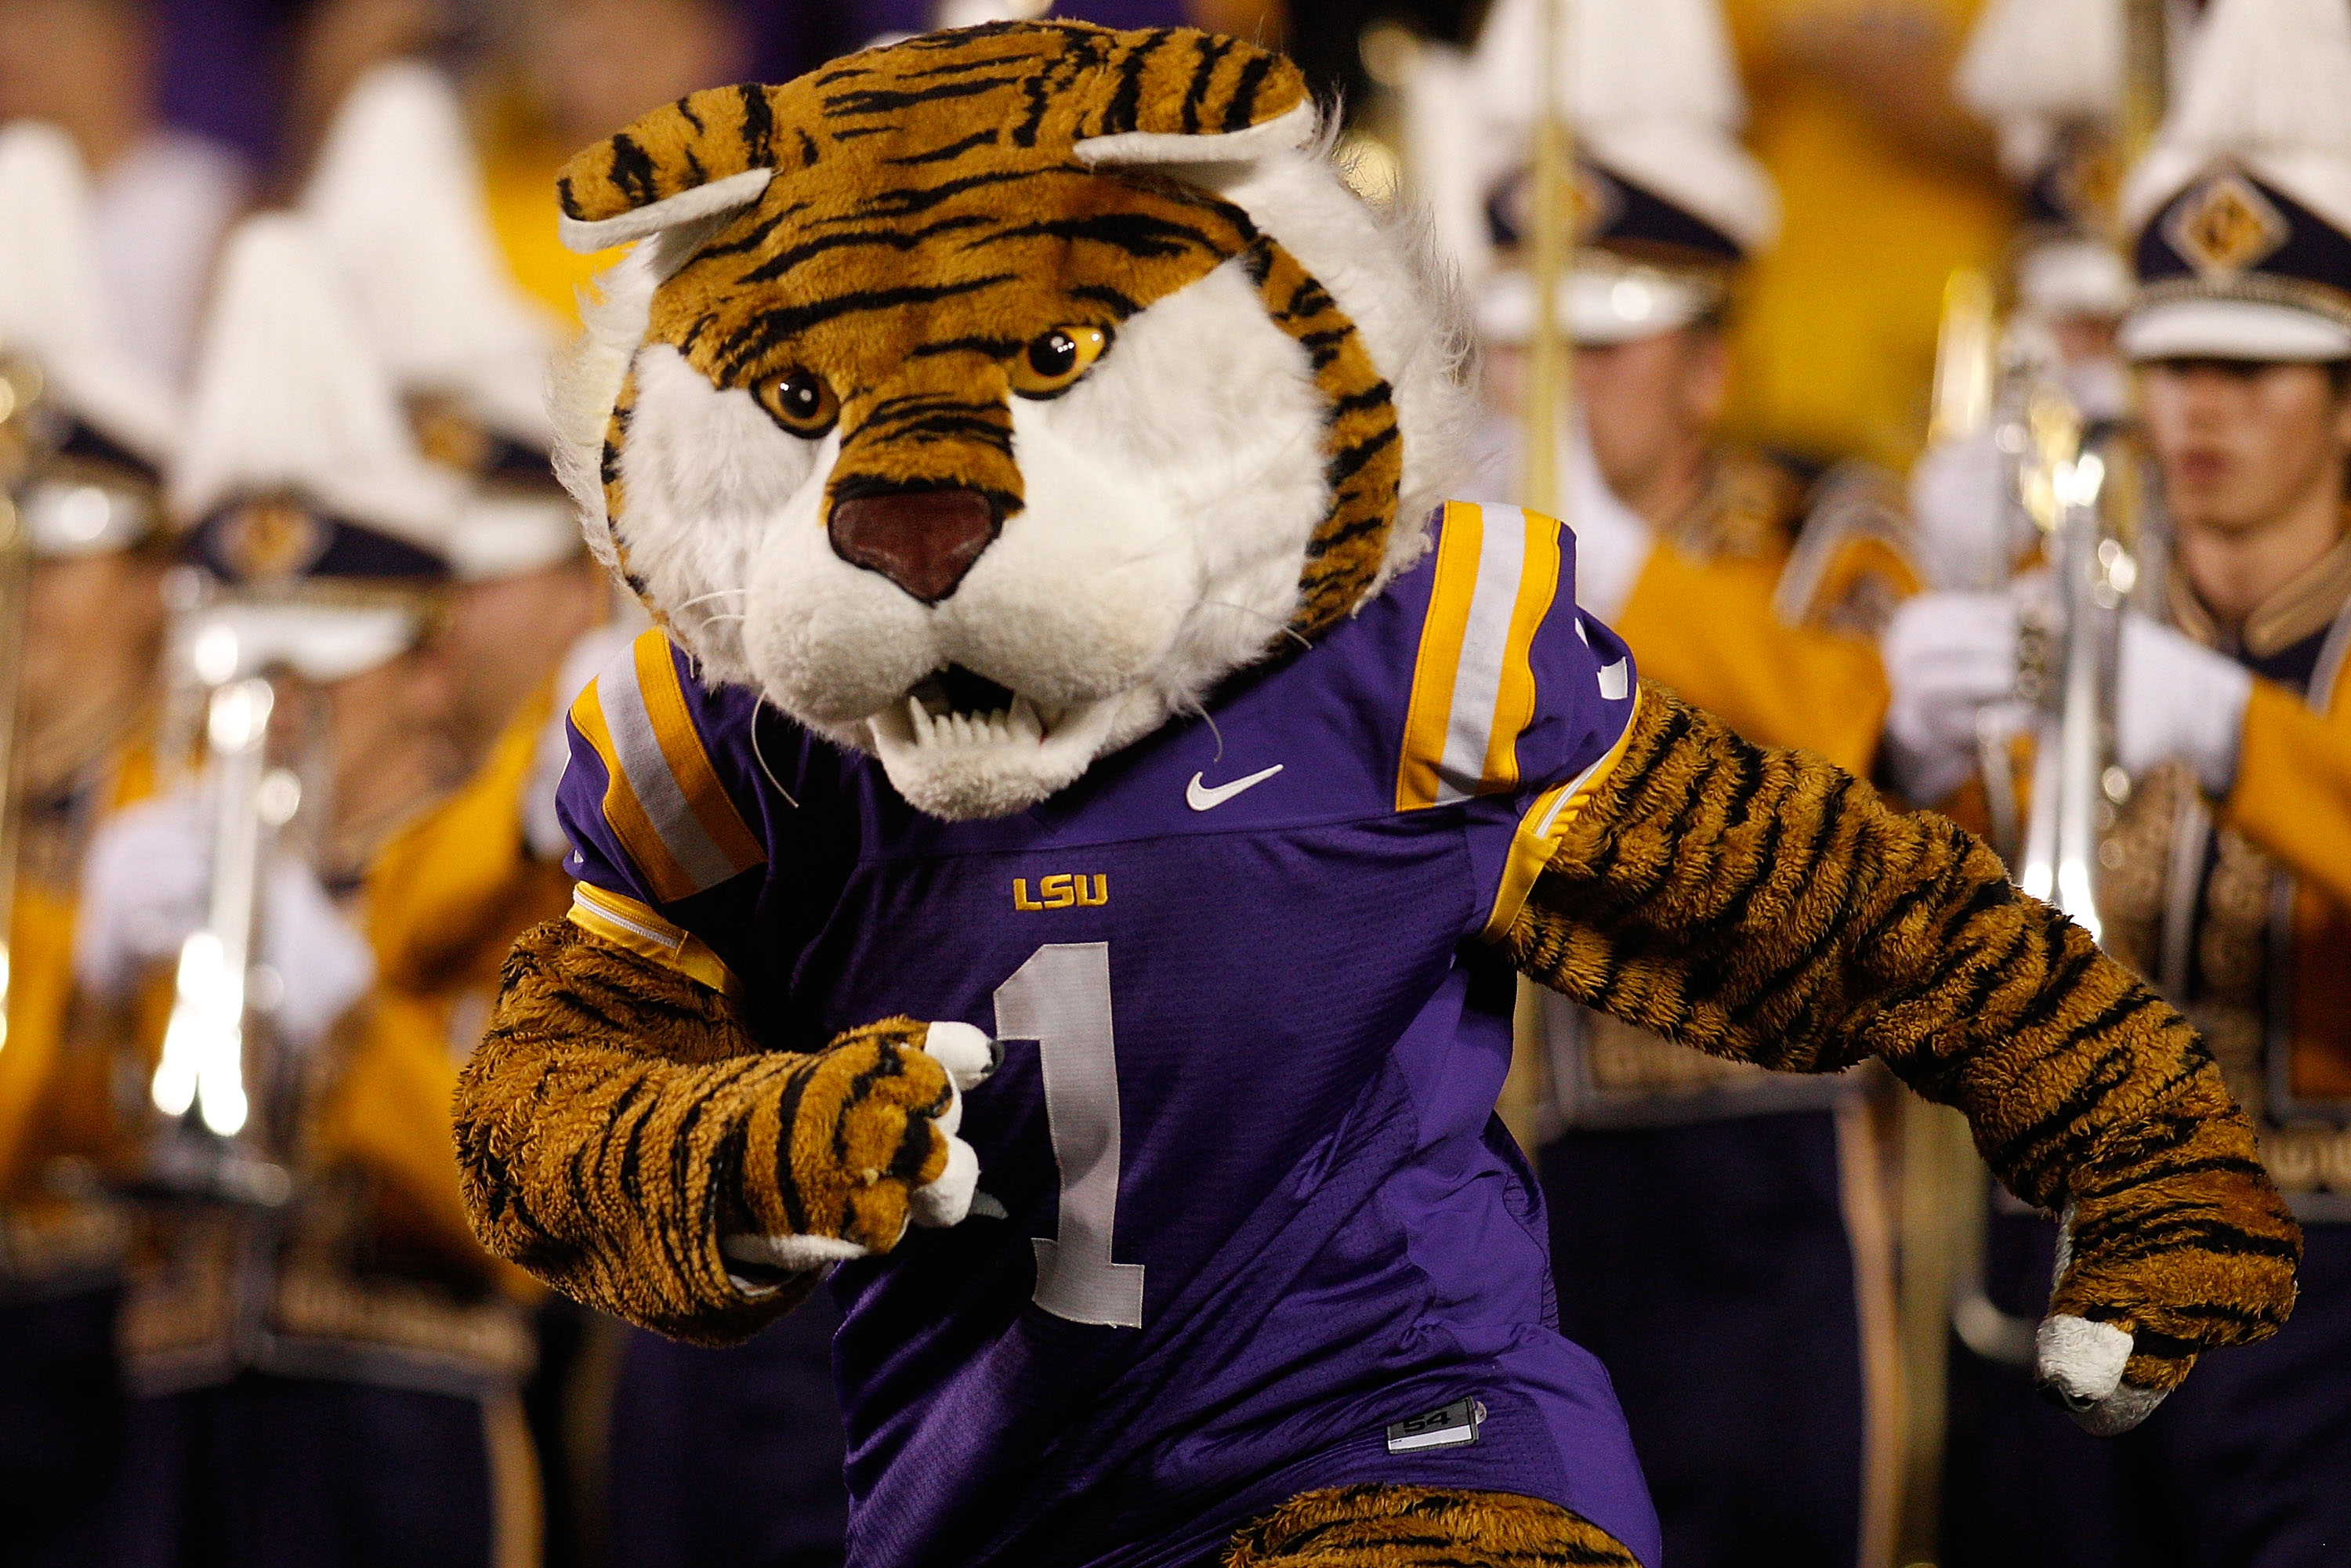 BATON ROUGE, LA - SEPTEMBER 25:  Mascot Mike the Tiger of the Louisiana State Univeristy Tigers marches on the field before the game against the West Virginia Mountaineers at Tiger Stadium on September 25, 2010 in Baton Rouge, Louisiana.  (Photo by Chris